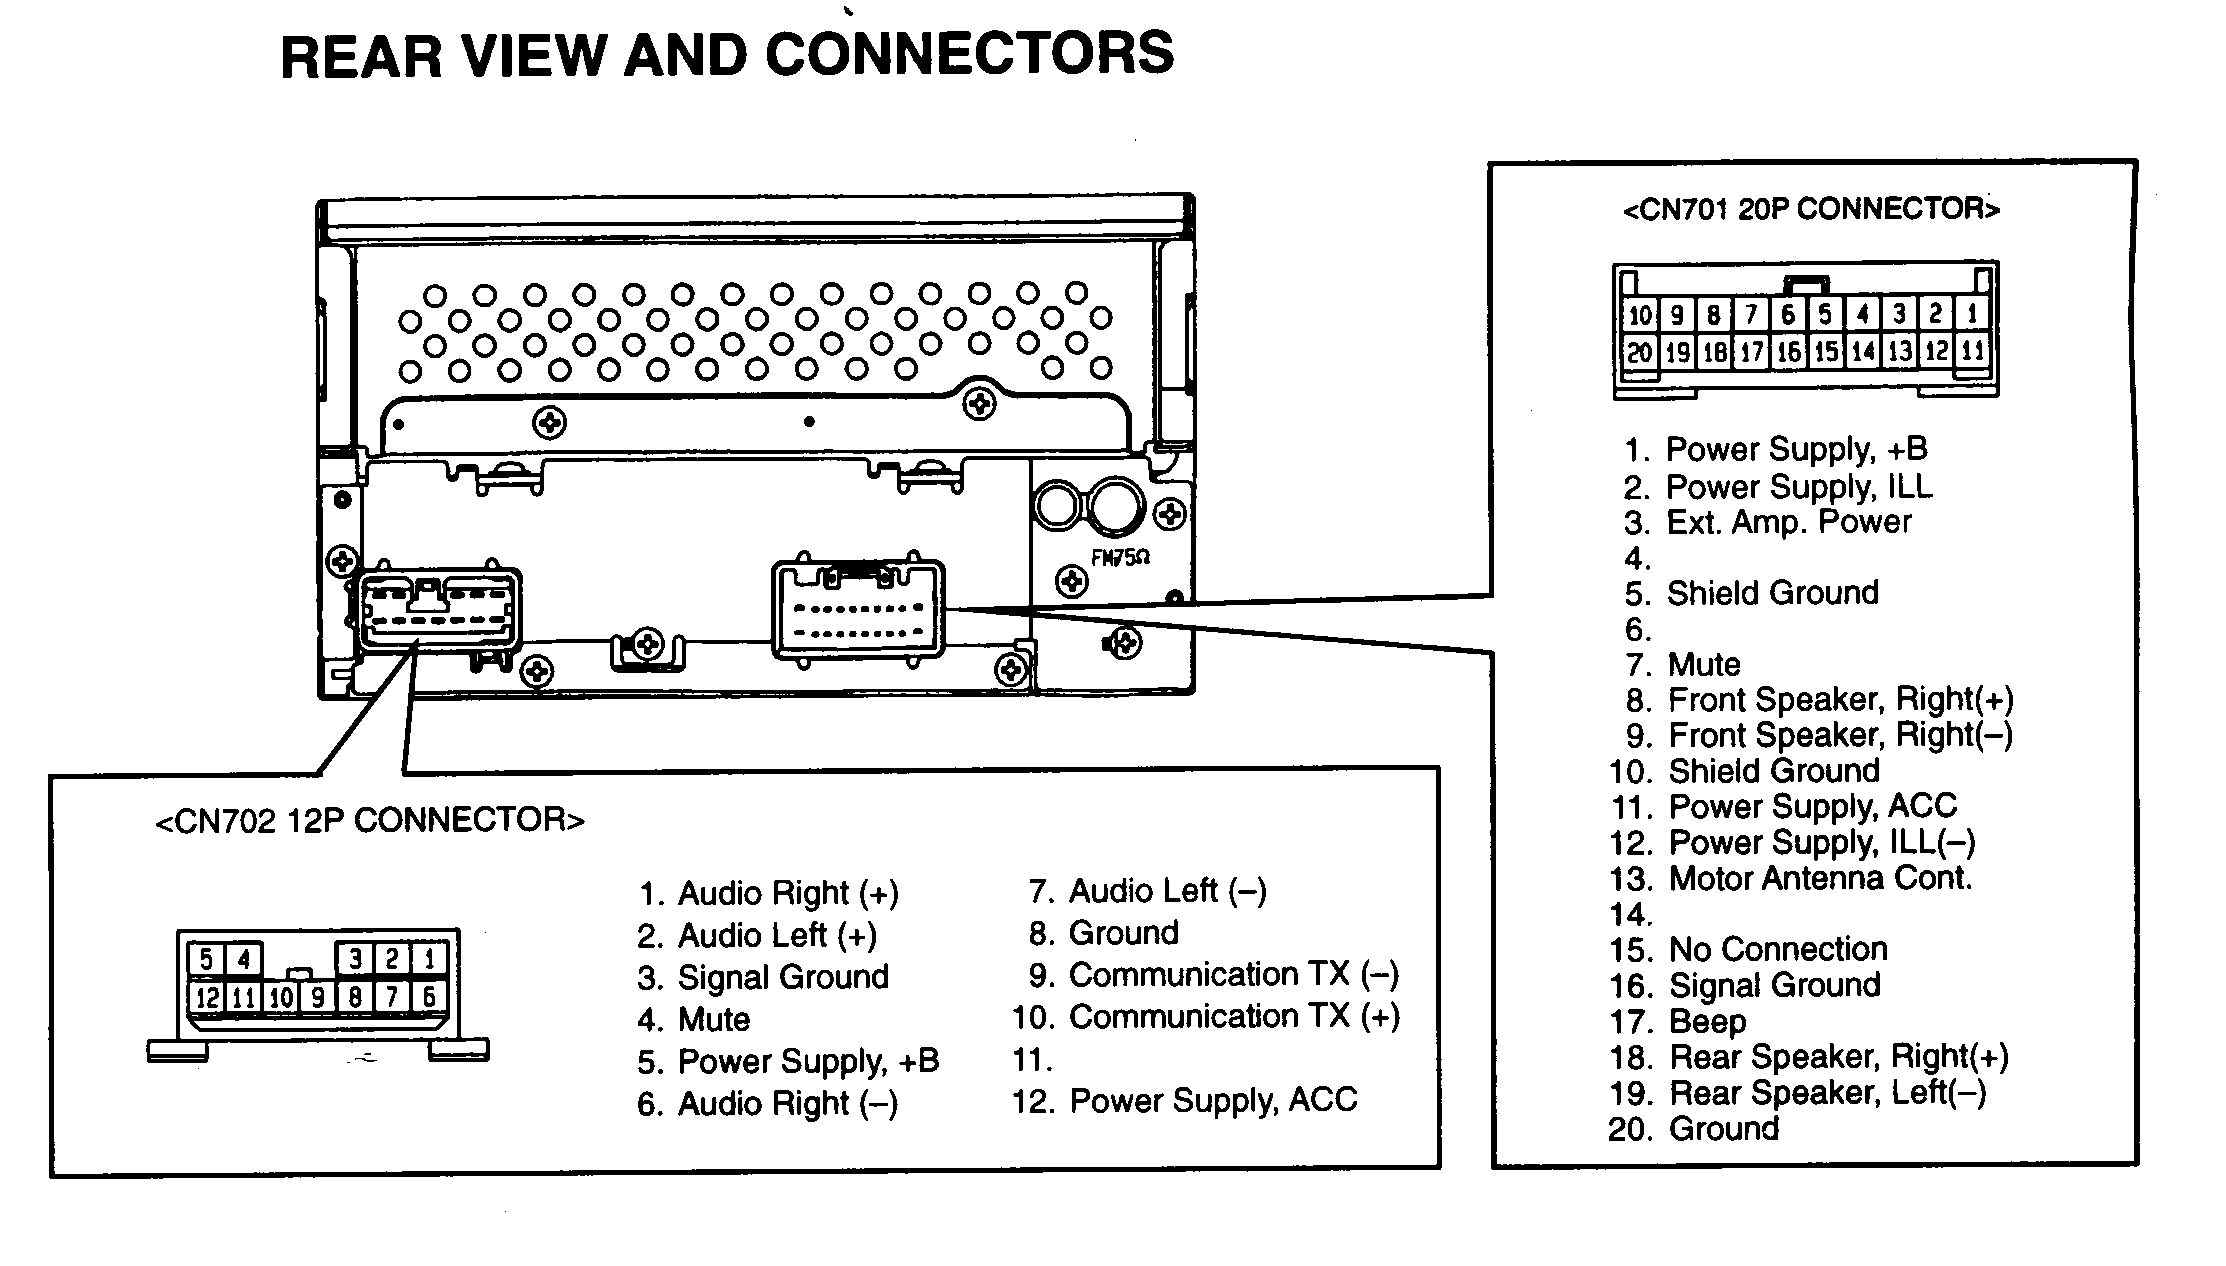 bose wiring diagrams simple wiring diagram car stereo help wire color code wire diagrams and wire code definitive technology wiring diagram bose wiring diagrams